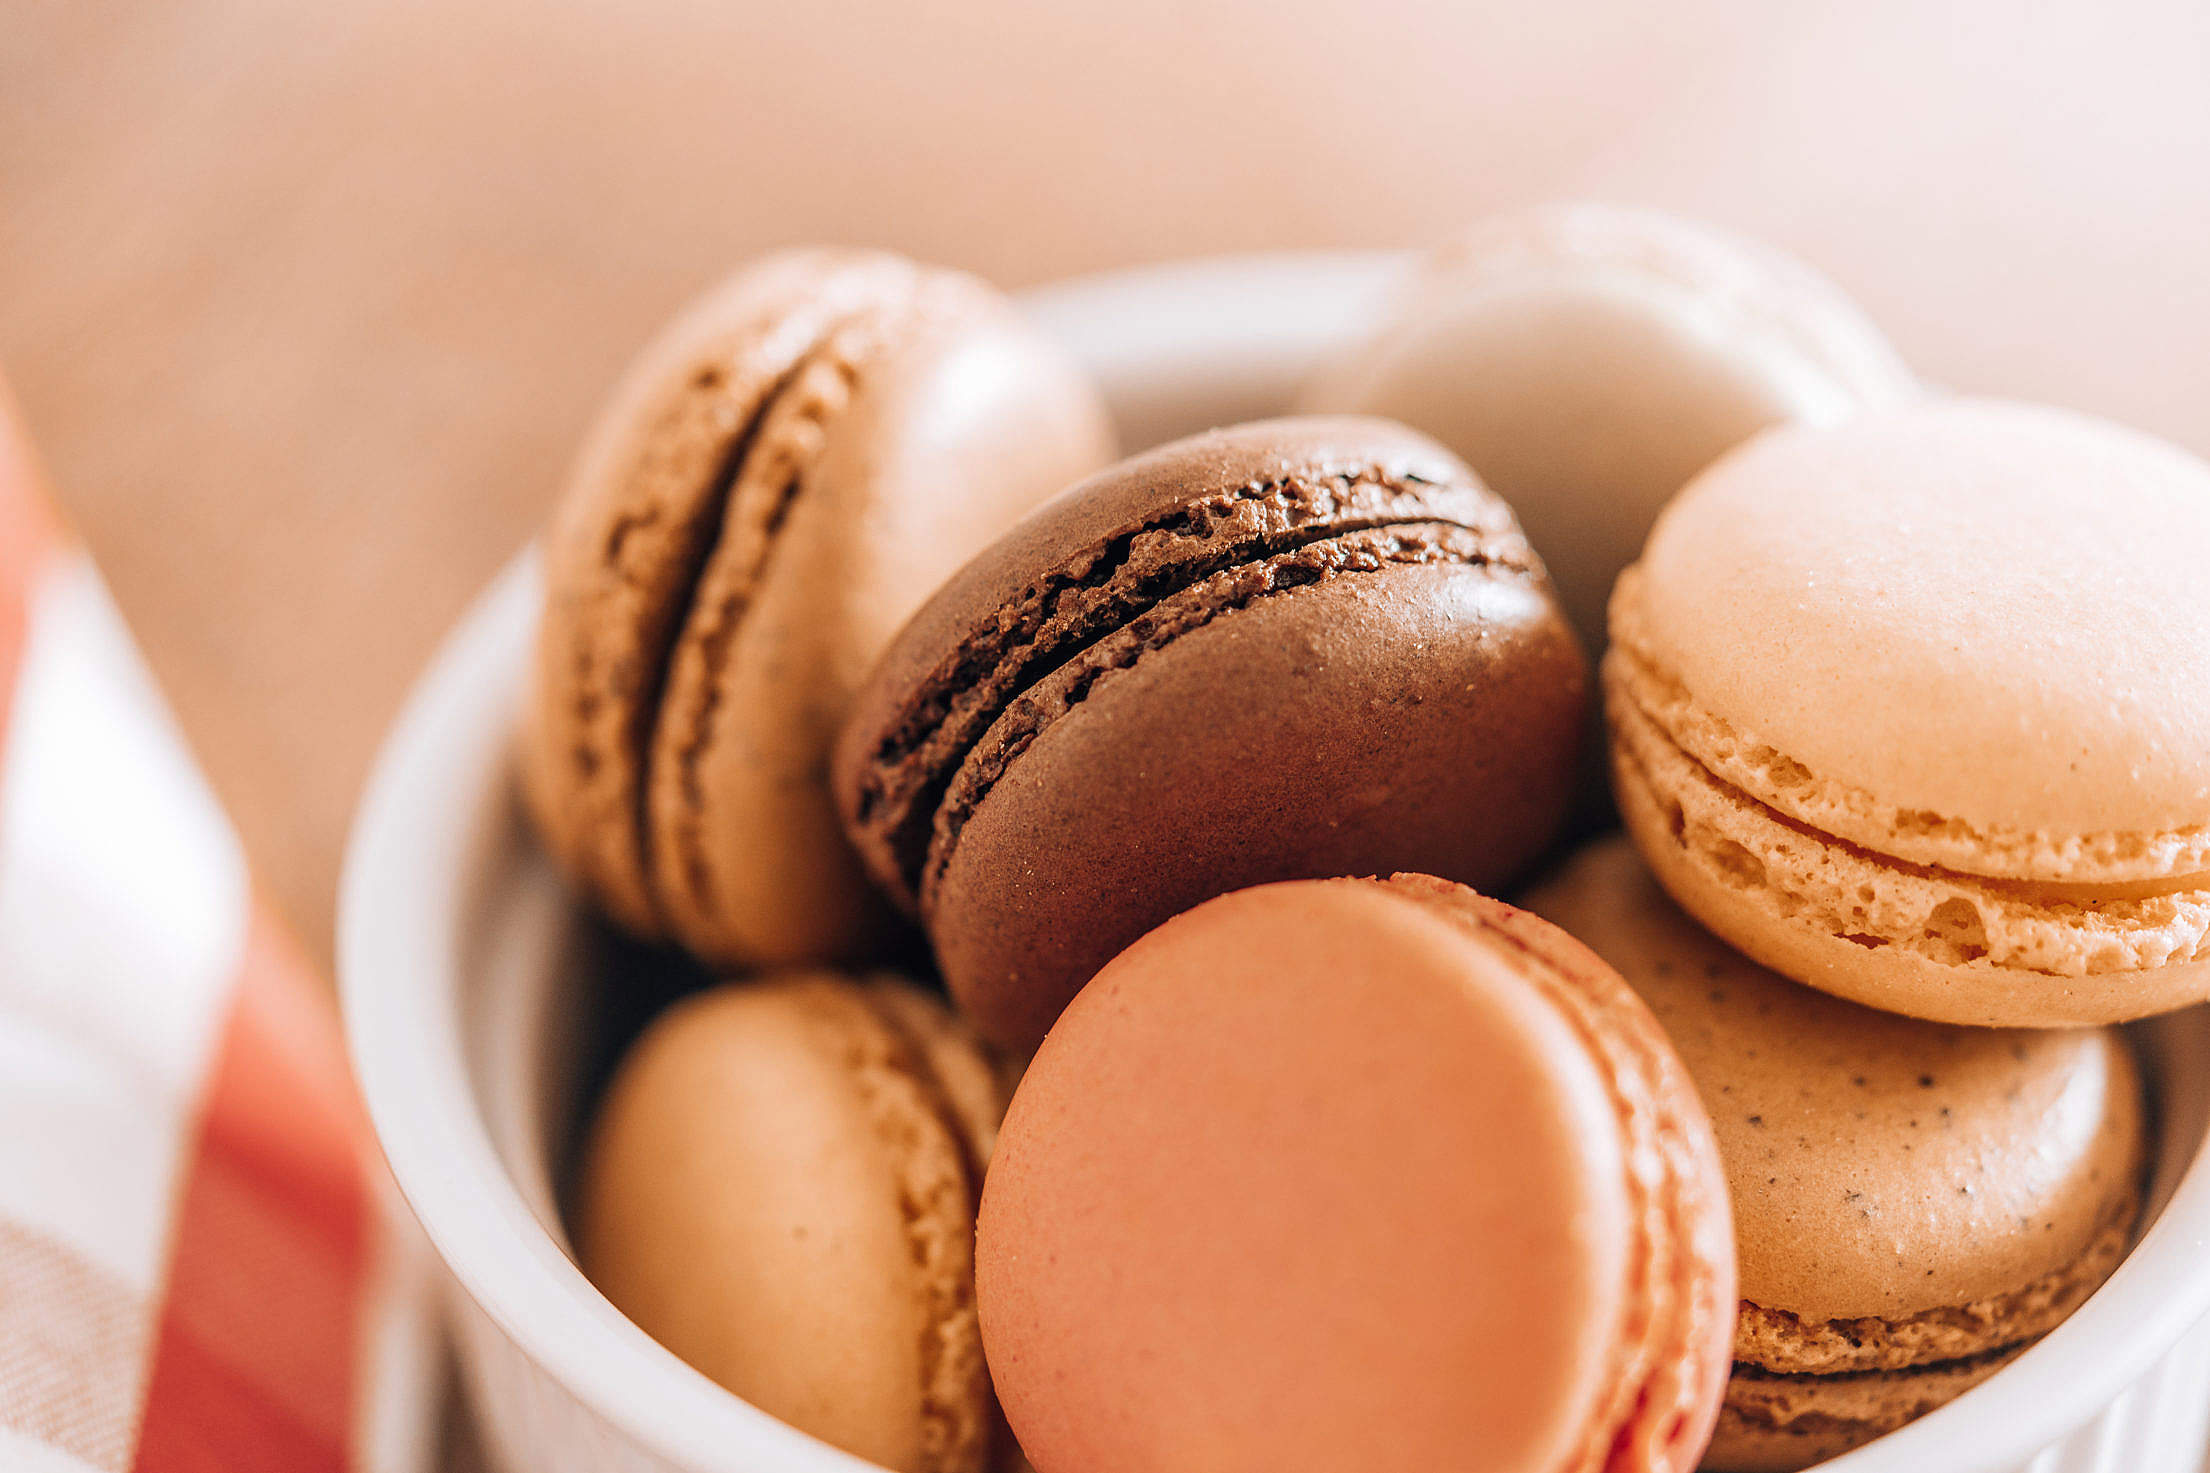 Yummy Homemade Macarons in a Bowl Free Stock Photo